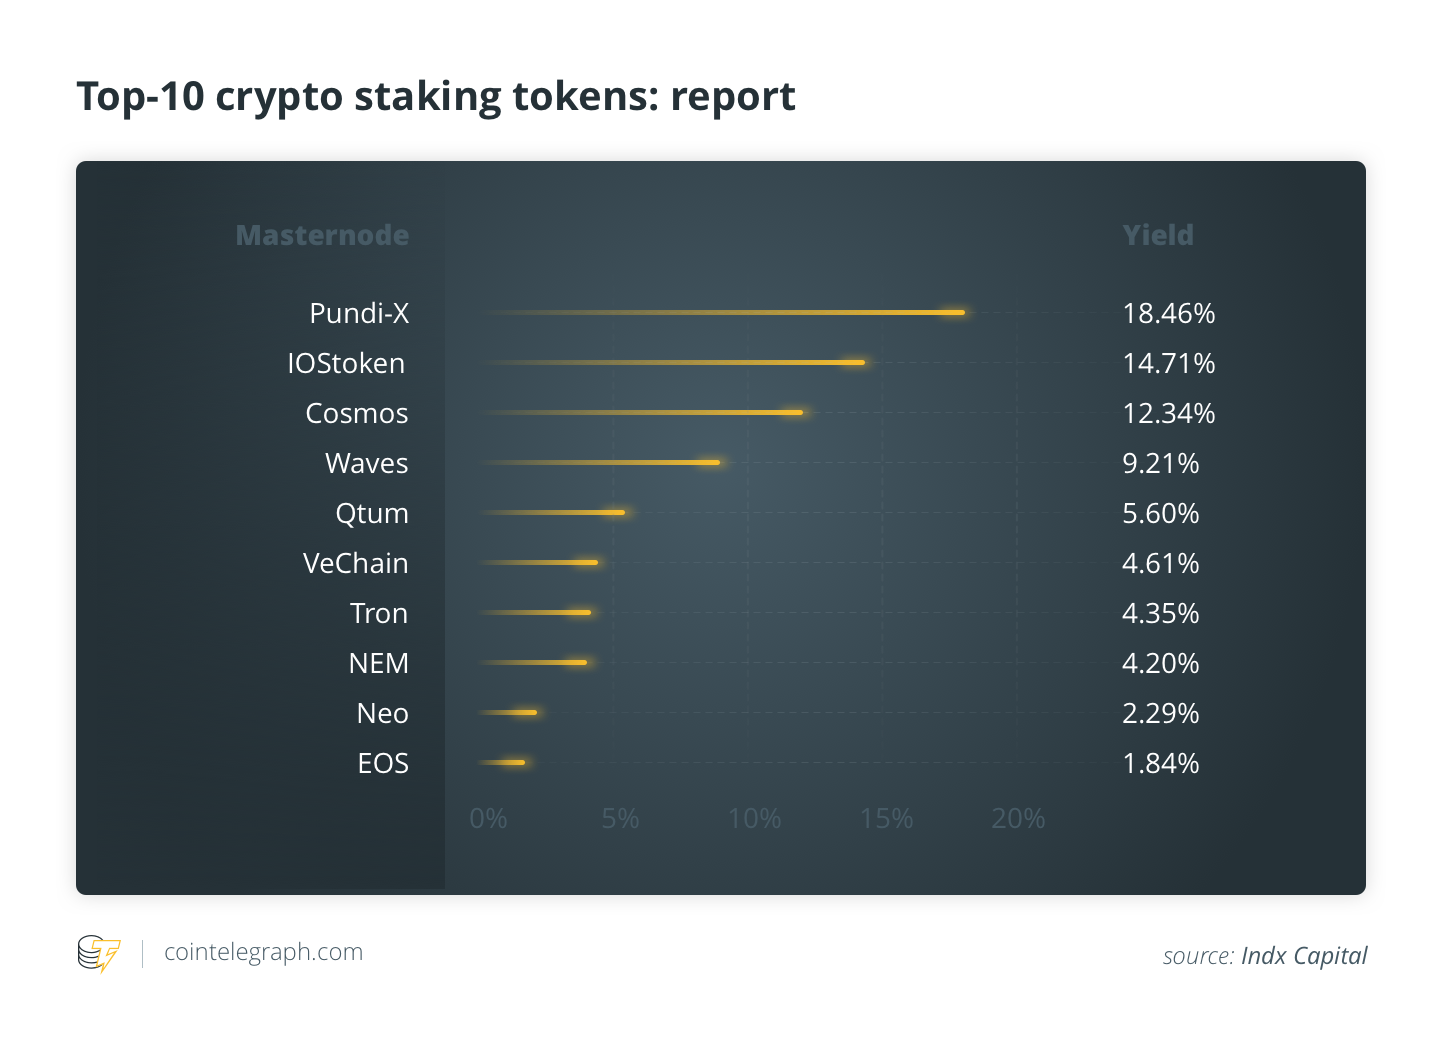 Top-10 crypto staking tokens